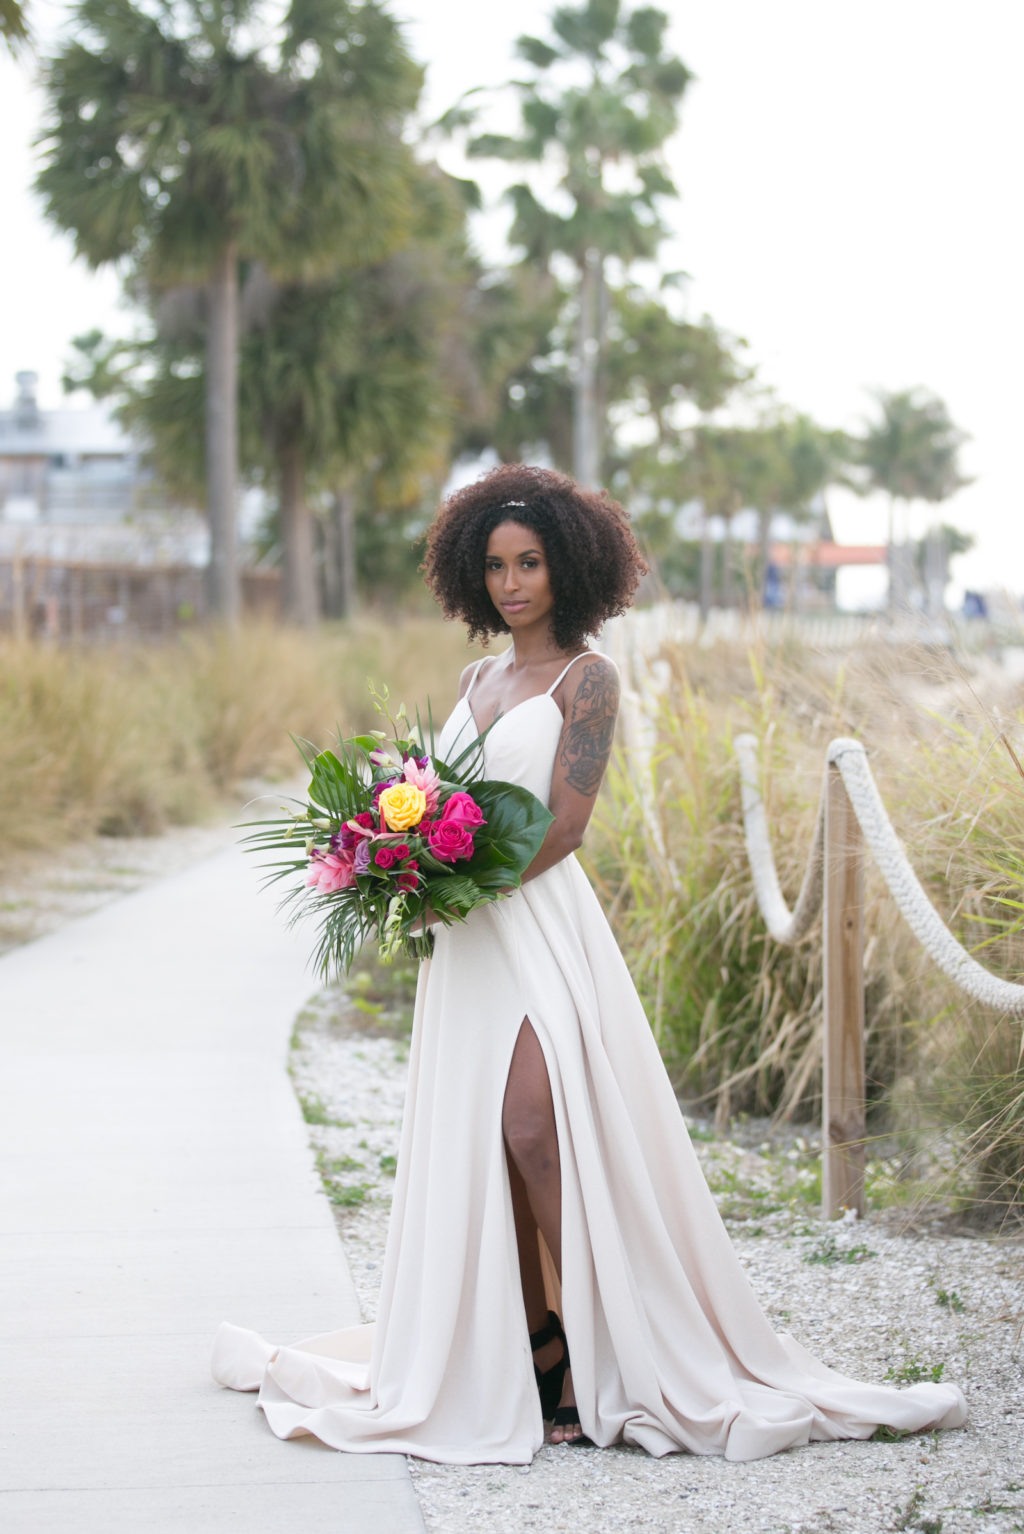 Boho Florida Bride Wearing Elegant Flowy Wedding Dress with High Slit, Holding Modern Tropical Inspired Floral Bouquet with Vibrant Yellow Roses, Bright Pink Flowers, Monstera and Palm Leaves | Salt Shack On the Bay Wedding | Tampa Bay Wedding Photographer Carrie Wildes Photography | South Tampa Wedding Planners Socialite Events | Wedding Dress Boutique Truly Forever Bridal Tampa